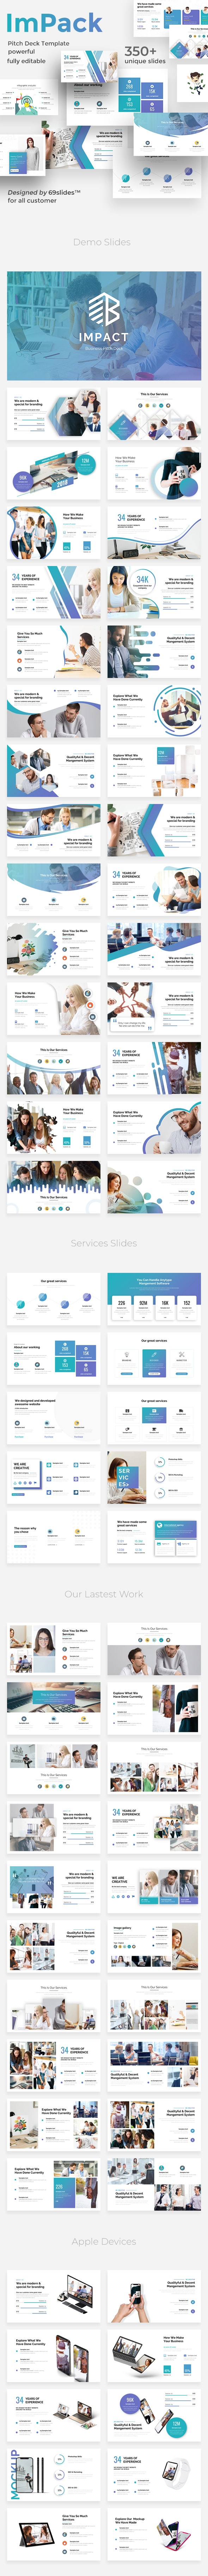 Business Impact Pitch Deck Powerpoint Template - Business PowerPoint Templates